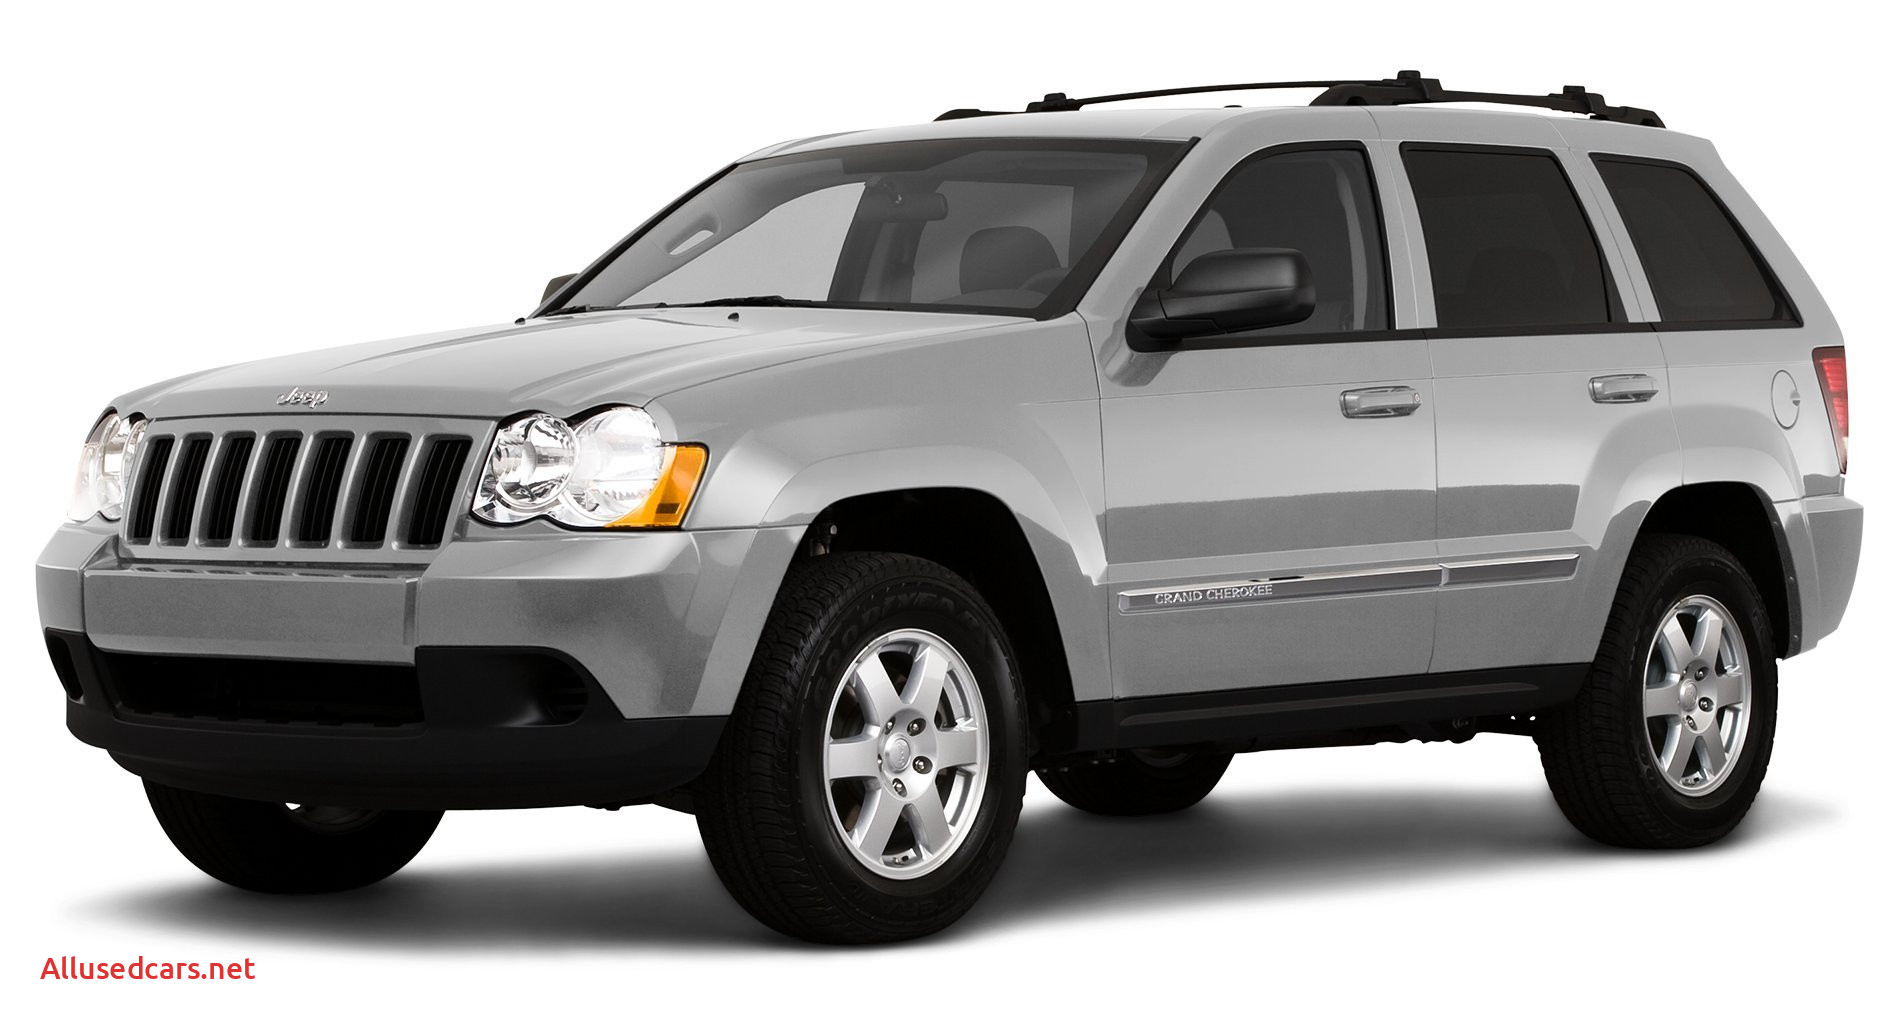 2010 Jeep Grand Cherokee Lovely Amazon 2010 Jeep Grand Cherokee Reviews and